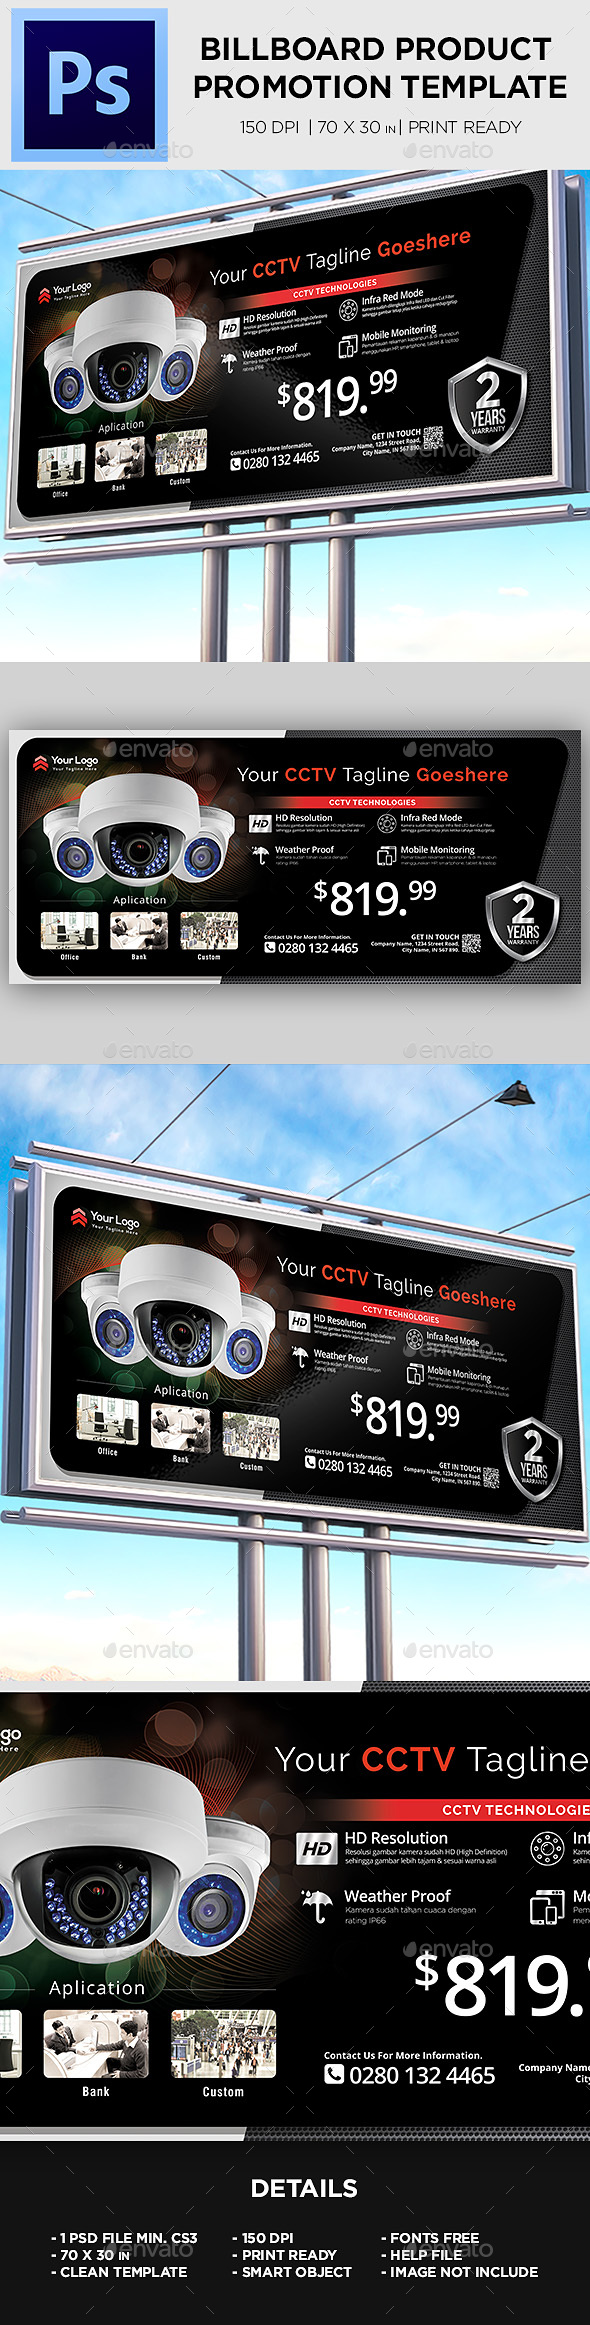 Billboard Template - Product Promotion - Signage Print Templates